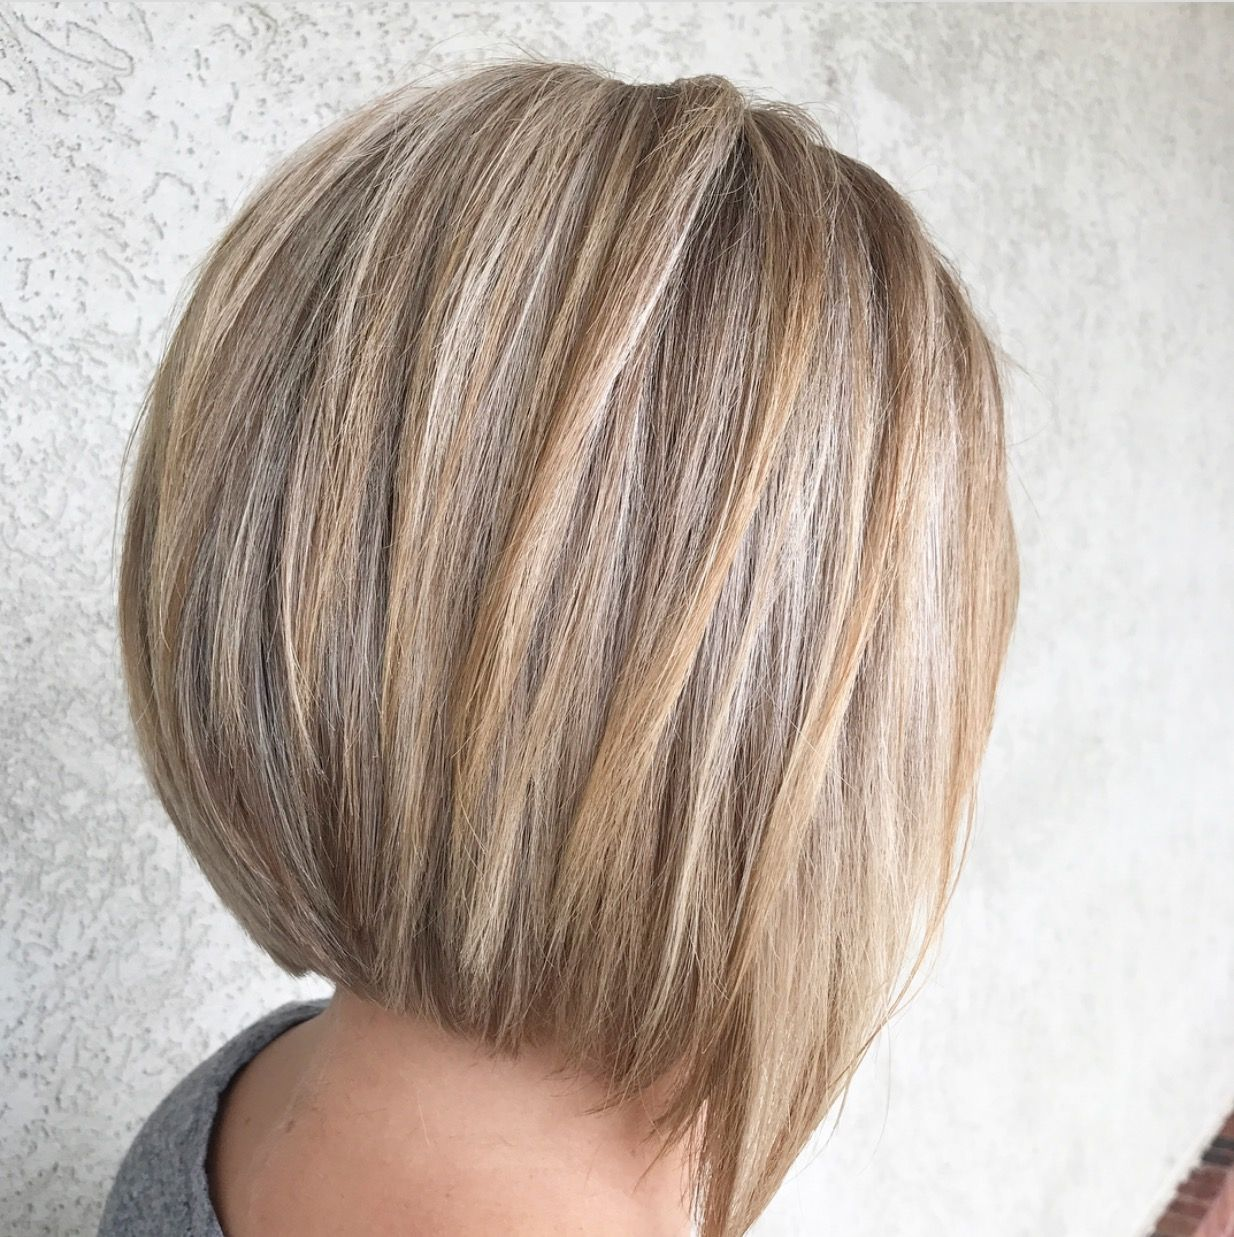 A Line Stacked Bob Haircut Highlights And Lowlights Hair Styles Stacked Bob Hairstyles Bob Hairstyles